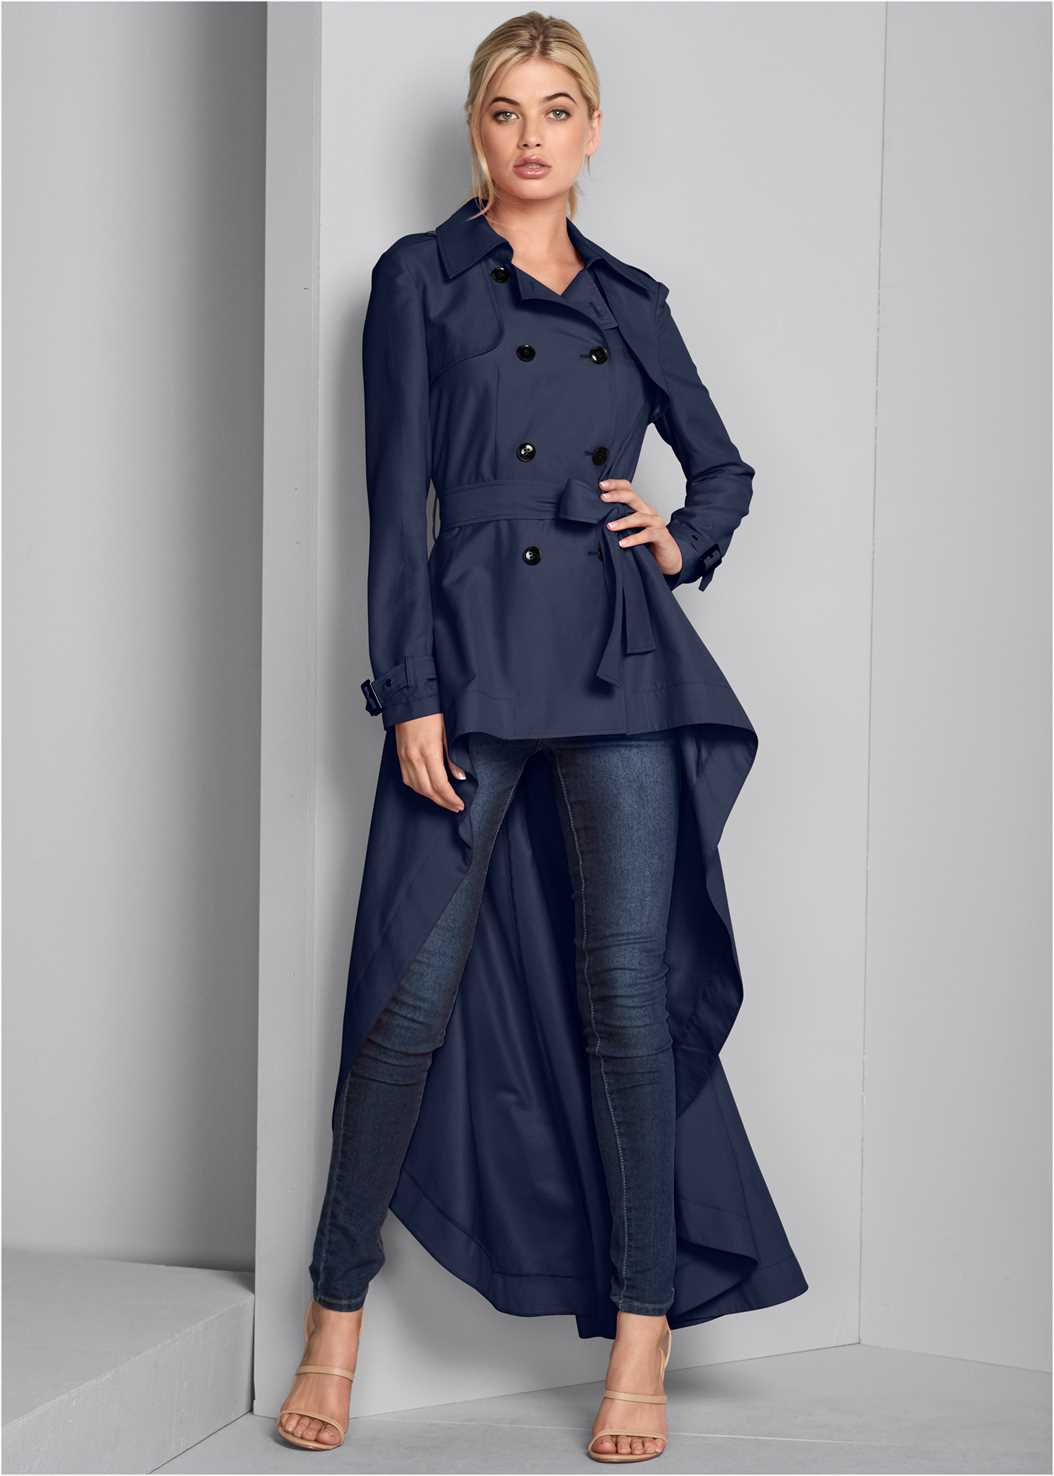 High Low Trench Coat,Mid Rise Color Skinny Jeans,High Heel Strappy Sandals